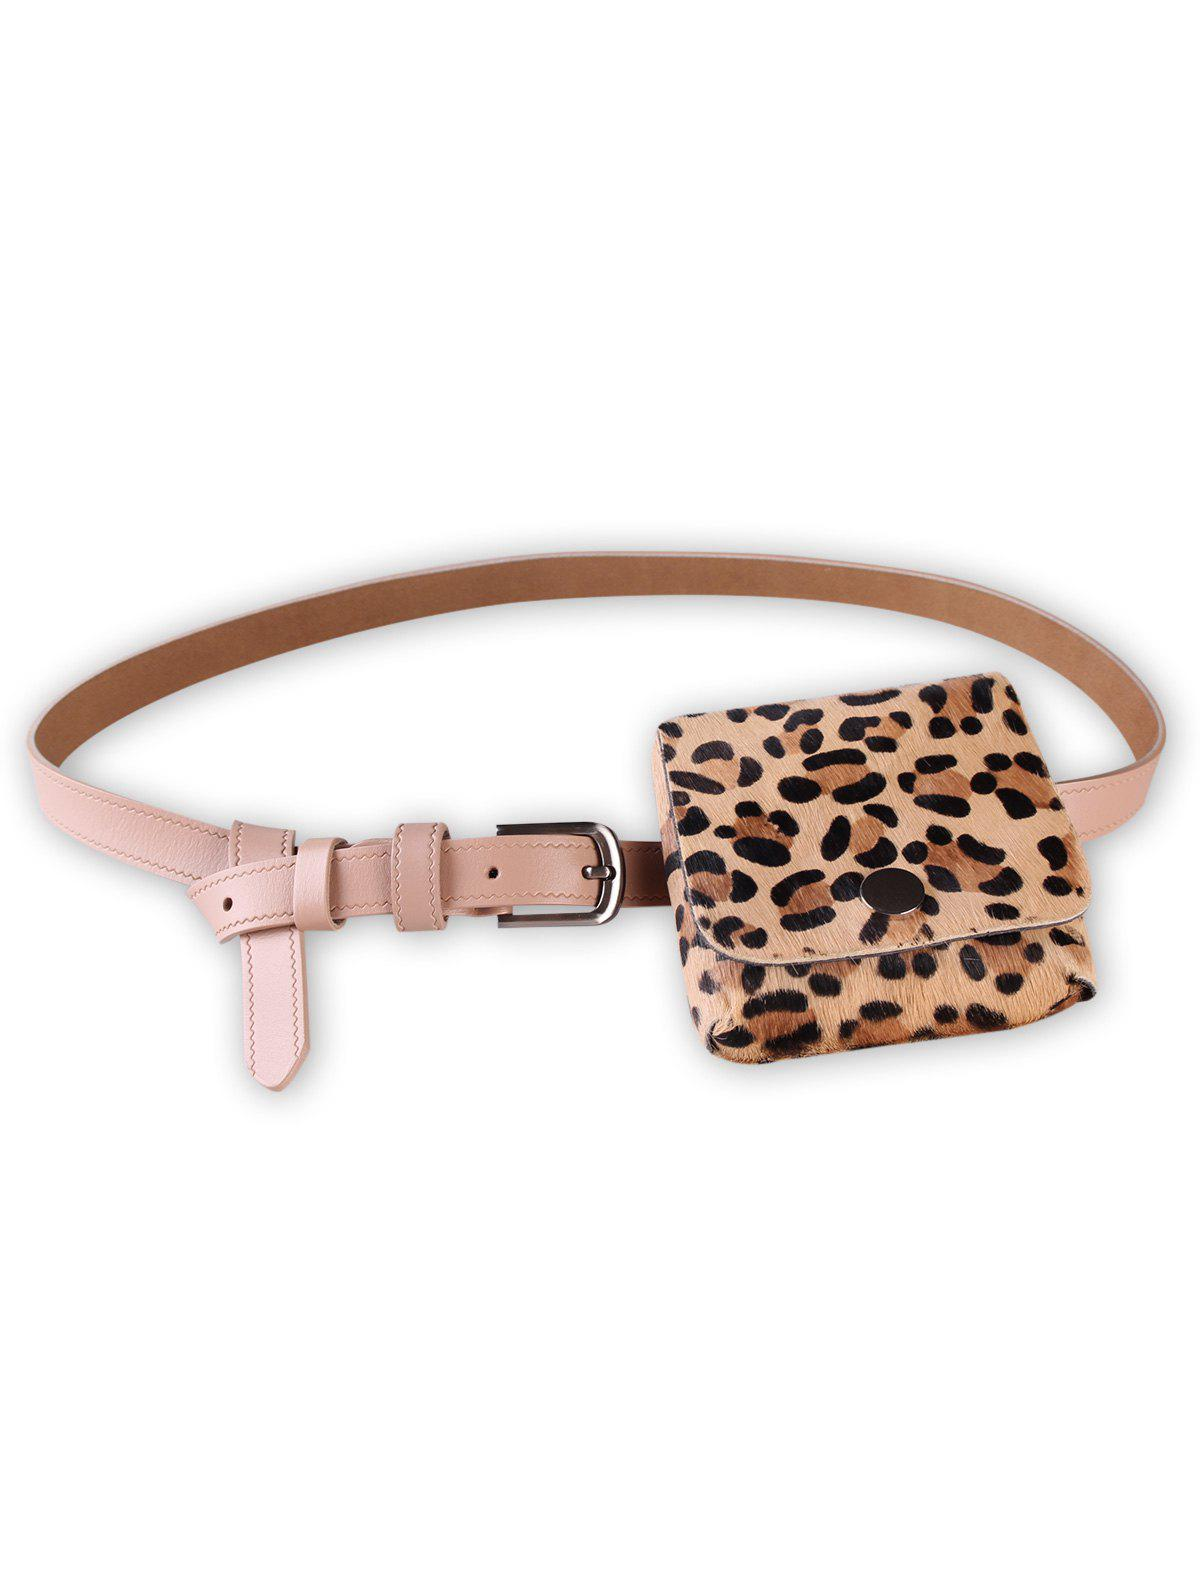 Trendy Leopard Fanny Pack Artificial Leather Belt Bag